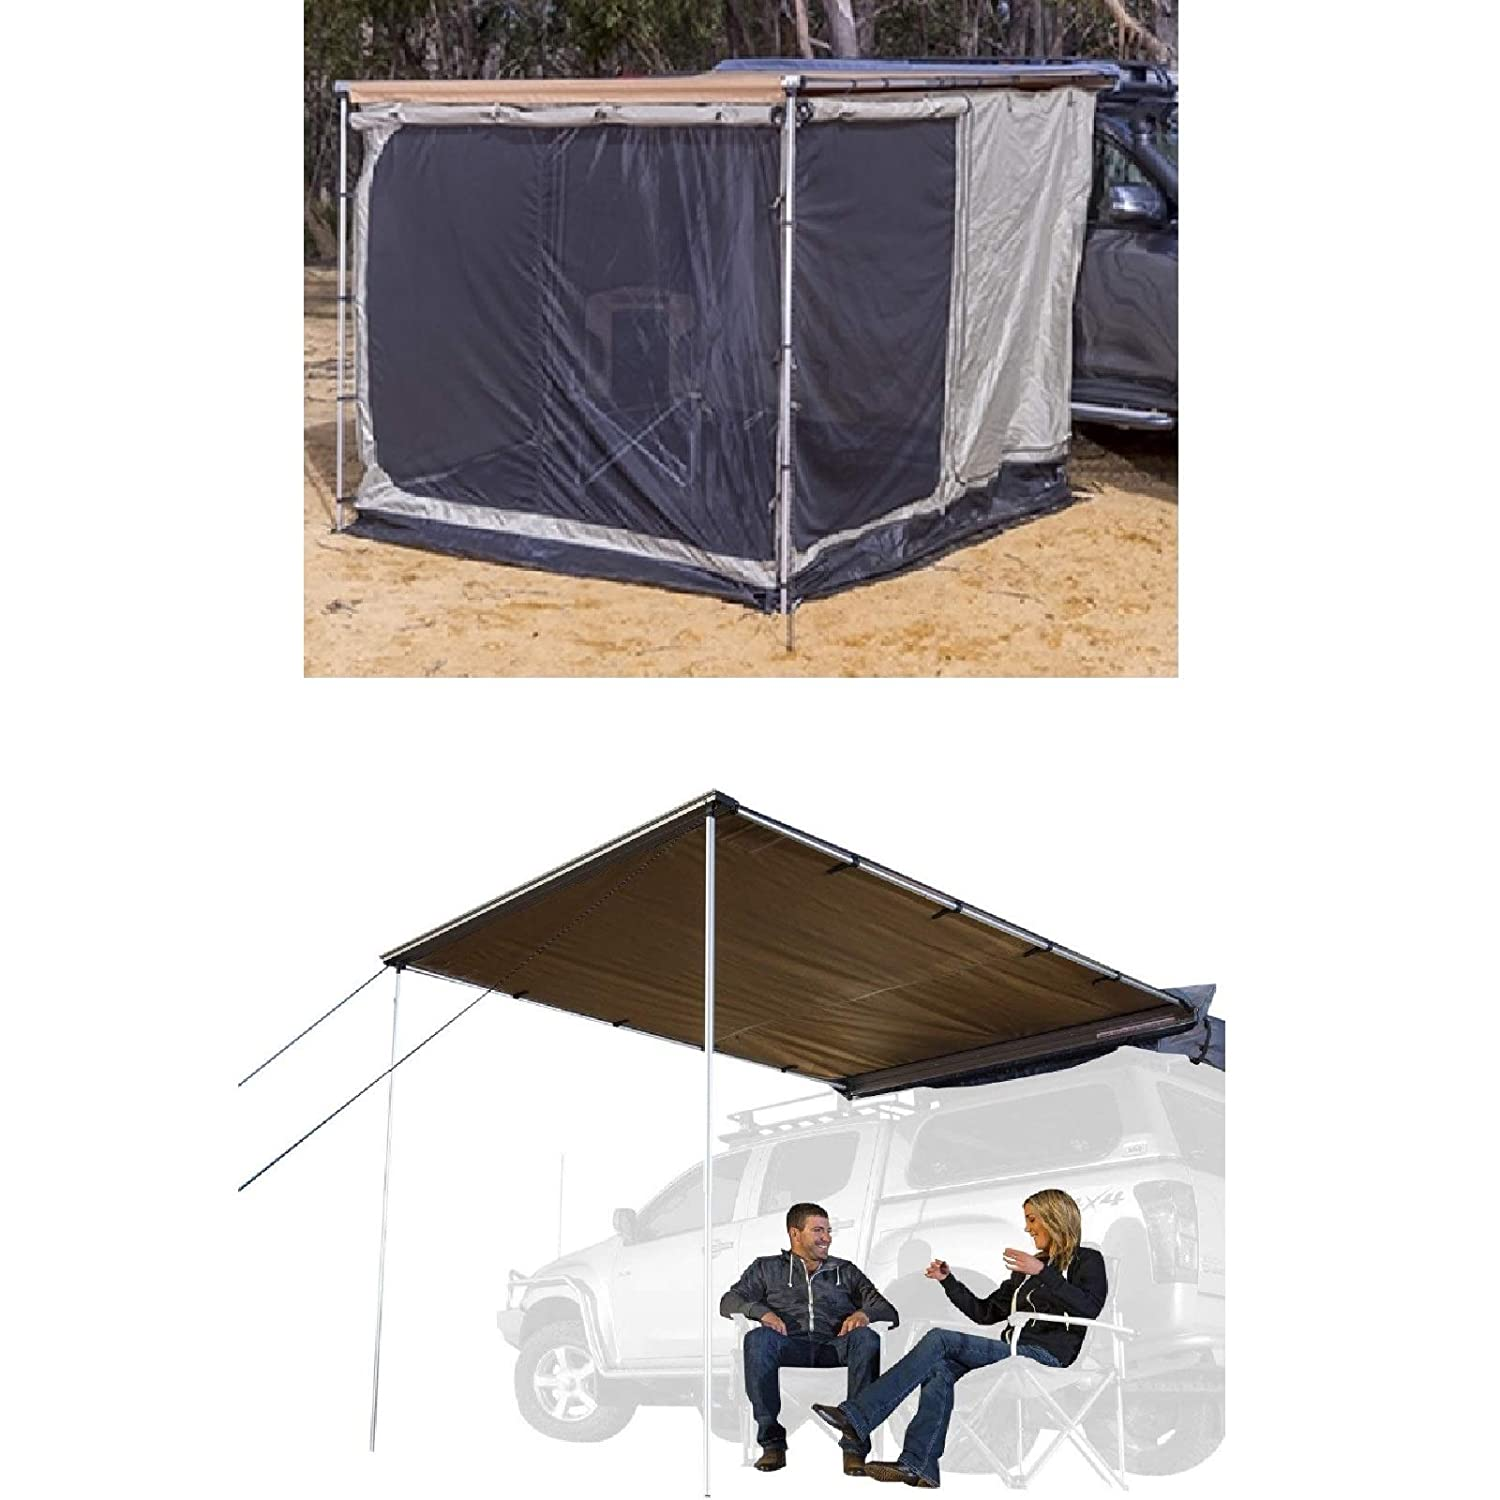 ARB 813208A//814201 Heavy Duty Awning Room Deluxe w//Floor 2000mm x 2500mm /& Awning